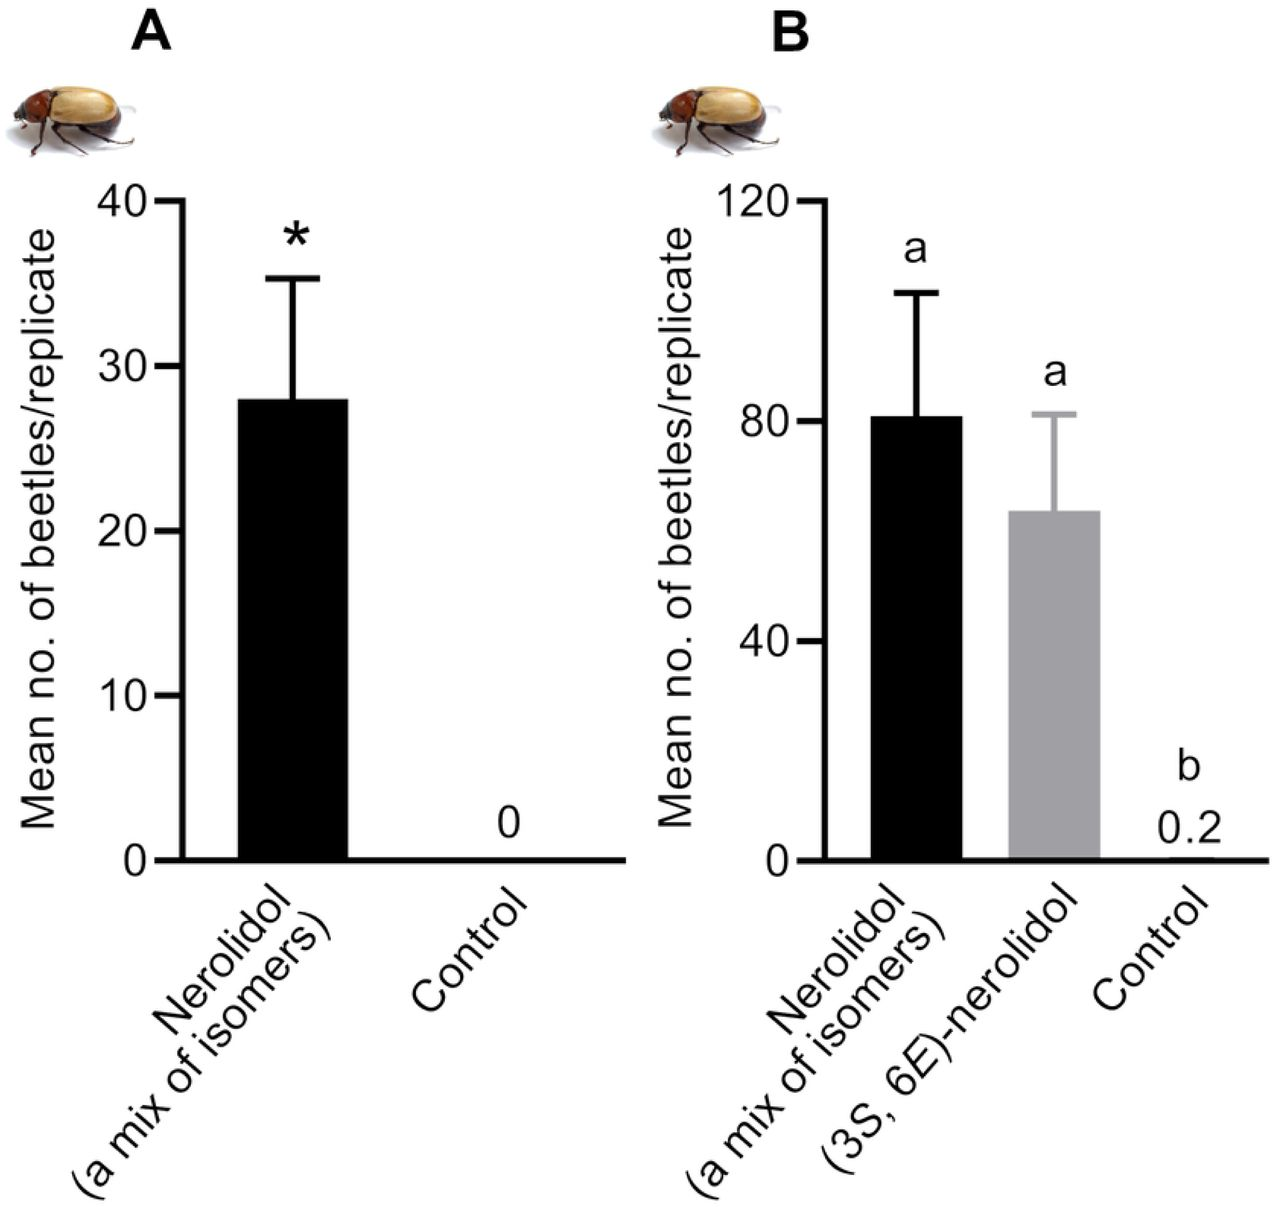 Mean number of Cyclocephalini beetle, Cyclocephala paraguayensis , caught per replicate in field experiments conducted in Cassilândia, MS, Brazil. Treatments: Nerolidol (a mix of isomers) = mixture of four isomers of nerolidol; (3 S , 6 E )-nerolidol = synthetic nerolidol, which is identical to the stereoisomer of nerolidol produced by L. siceraria flowers. A) Mean number of adults of C. paraguayensis caught per replicate of nerolidol-baited traps and controls. *Treatment is significantly different at P